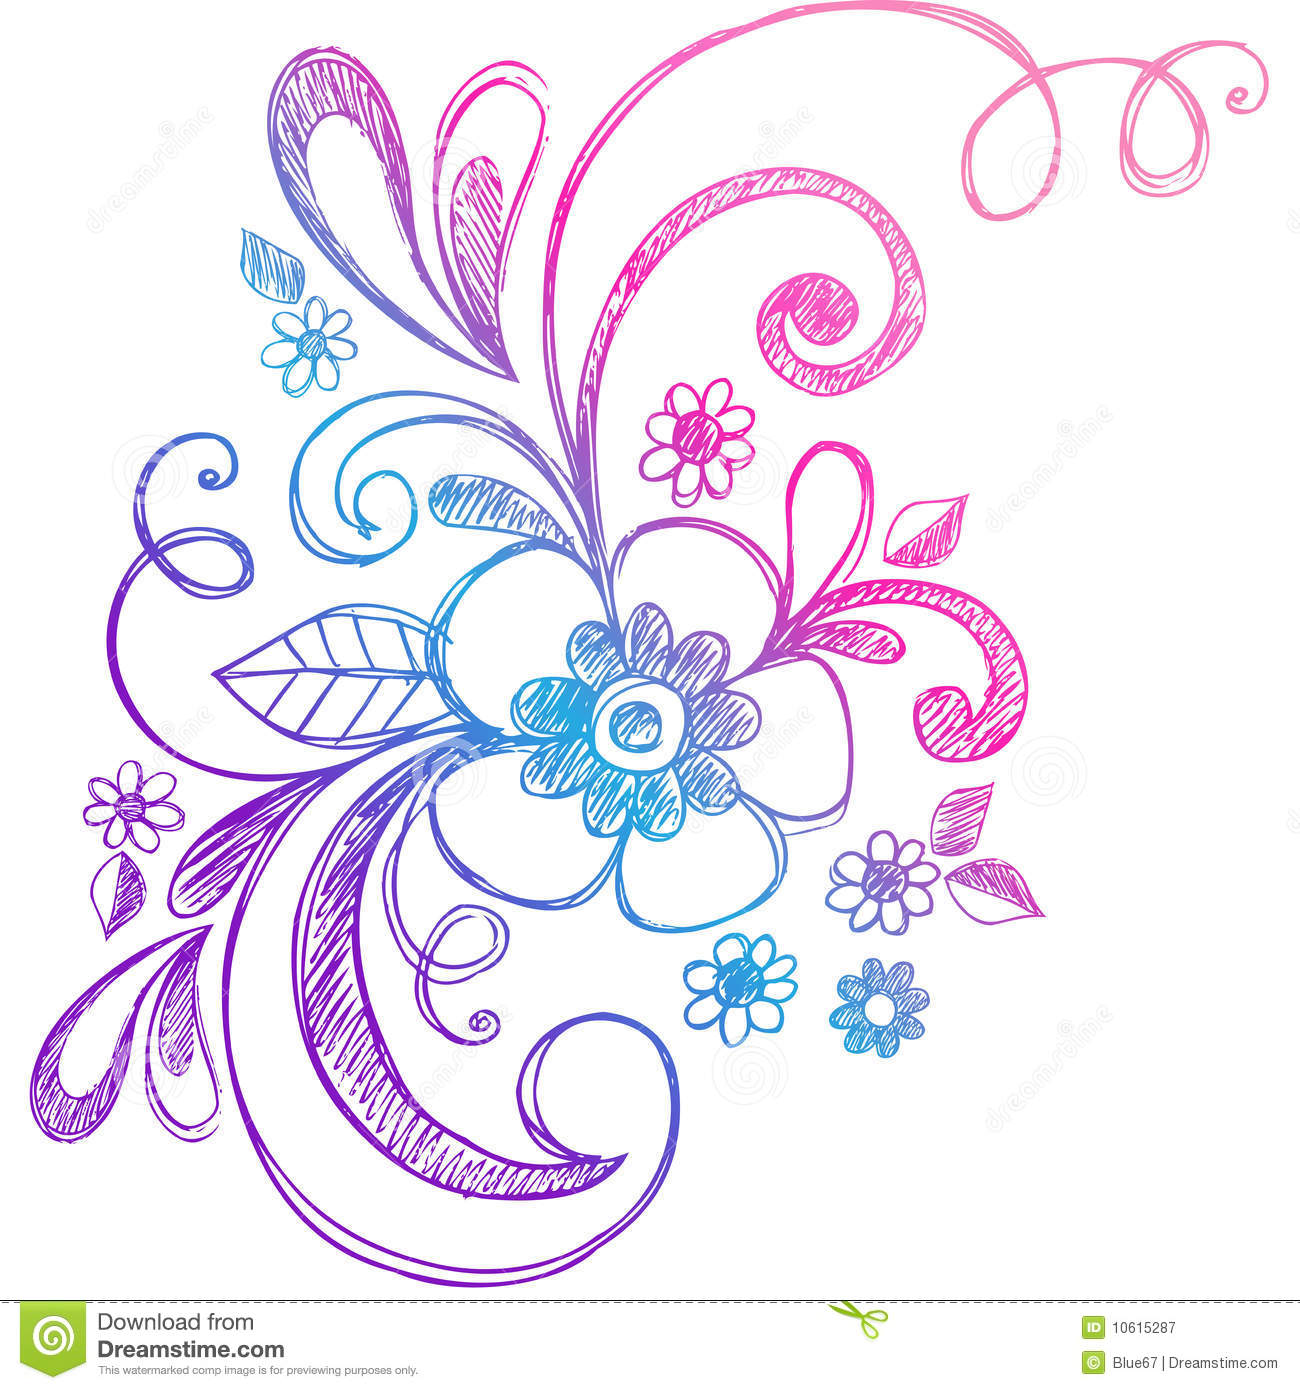 Sketchy Doodle Flower And Swirls Vector Stock Vector - Illustration